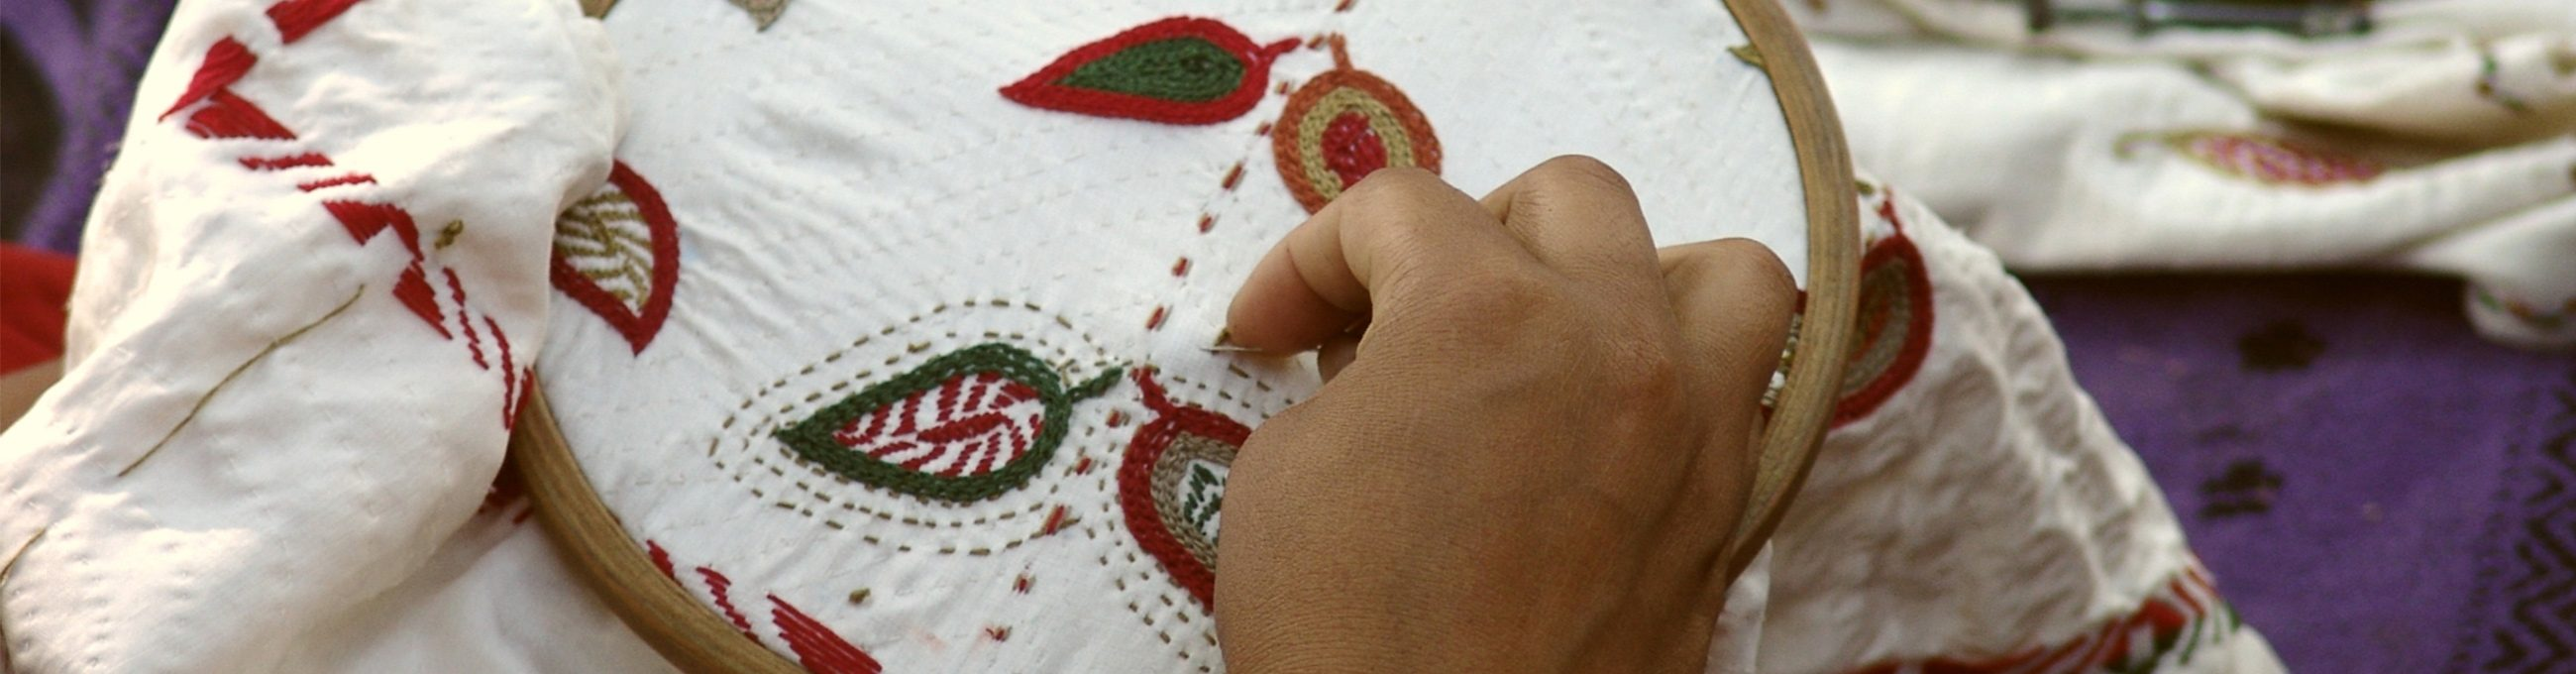 Fair Trade, Artisans, Gender Equality, Equitable Marketing Association (EMA) , India, Embroidery